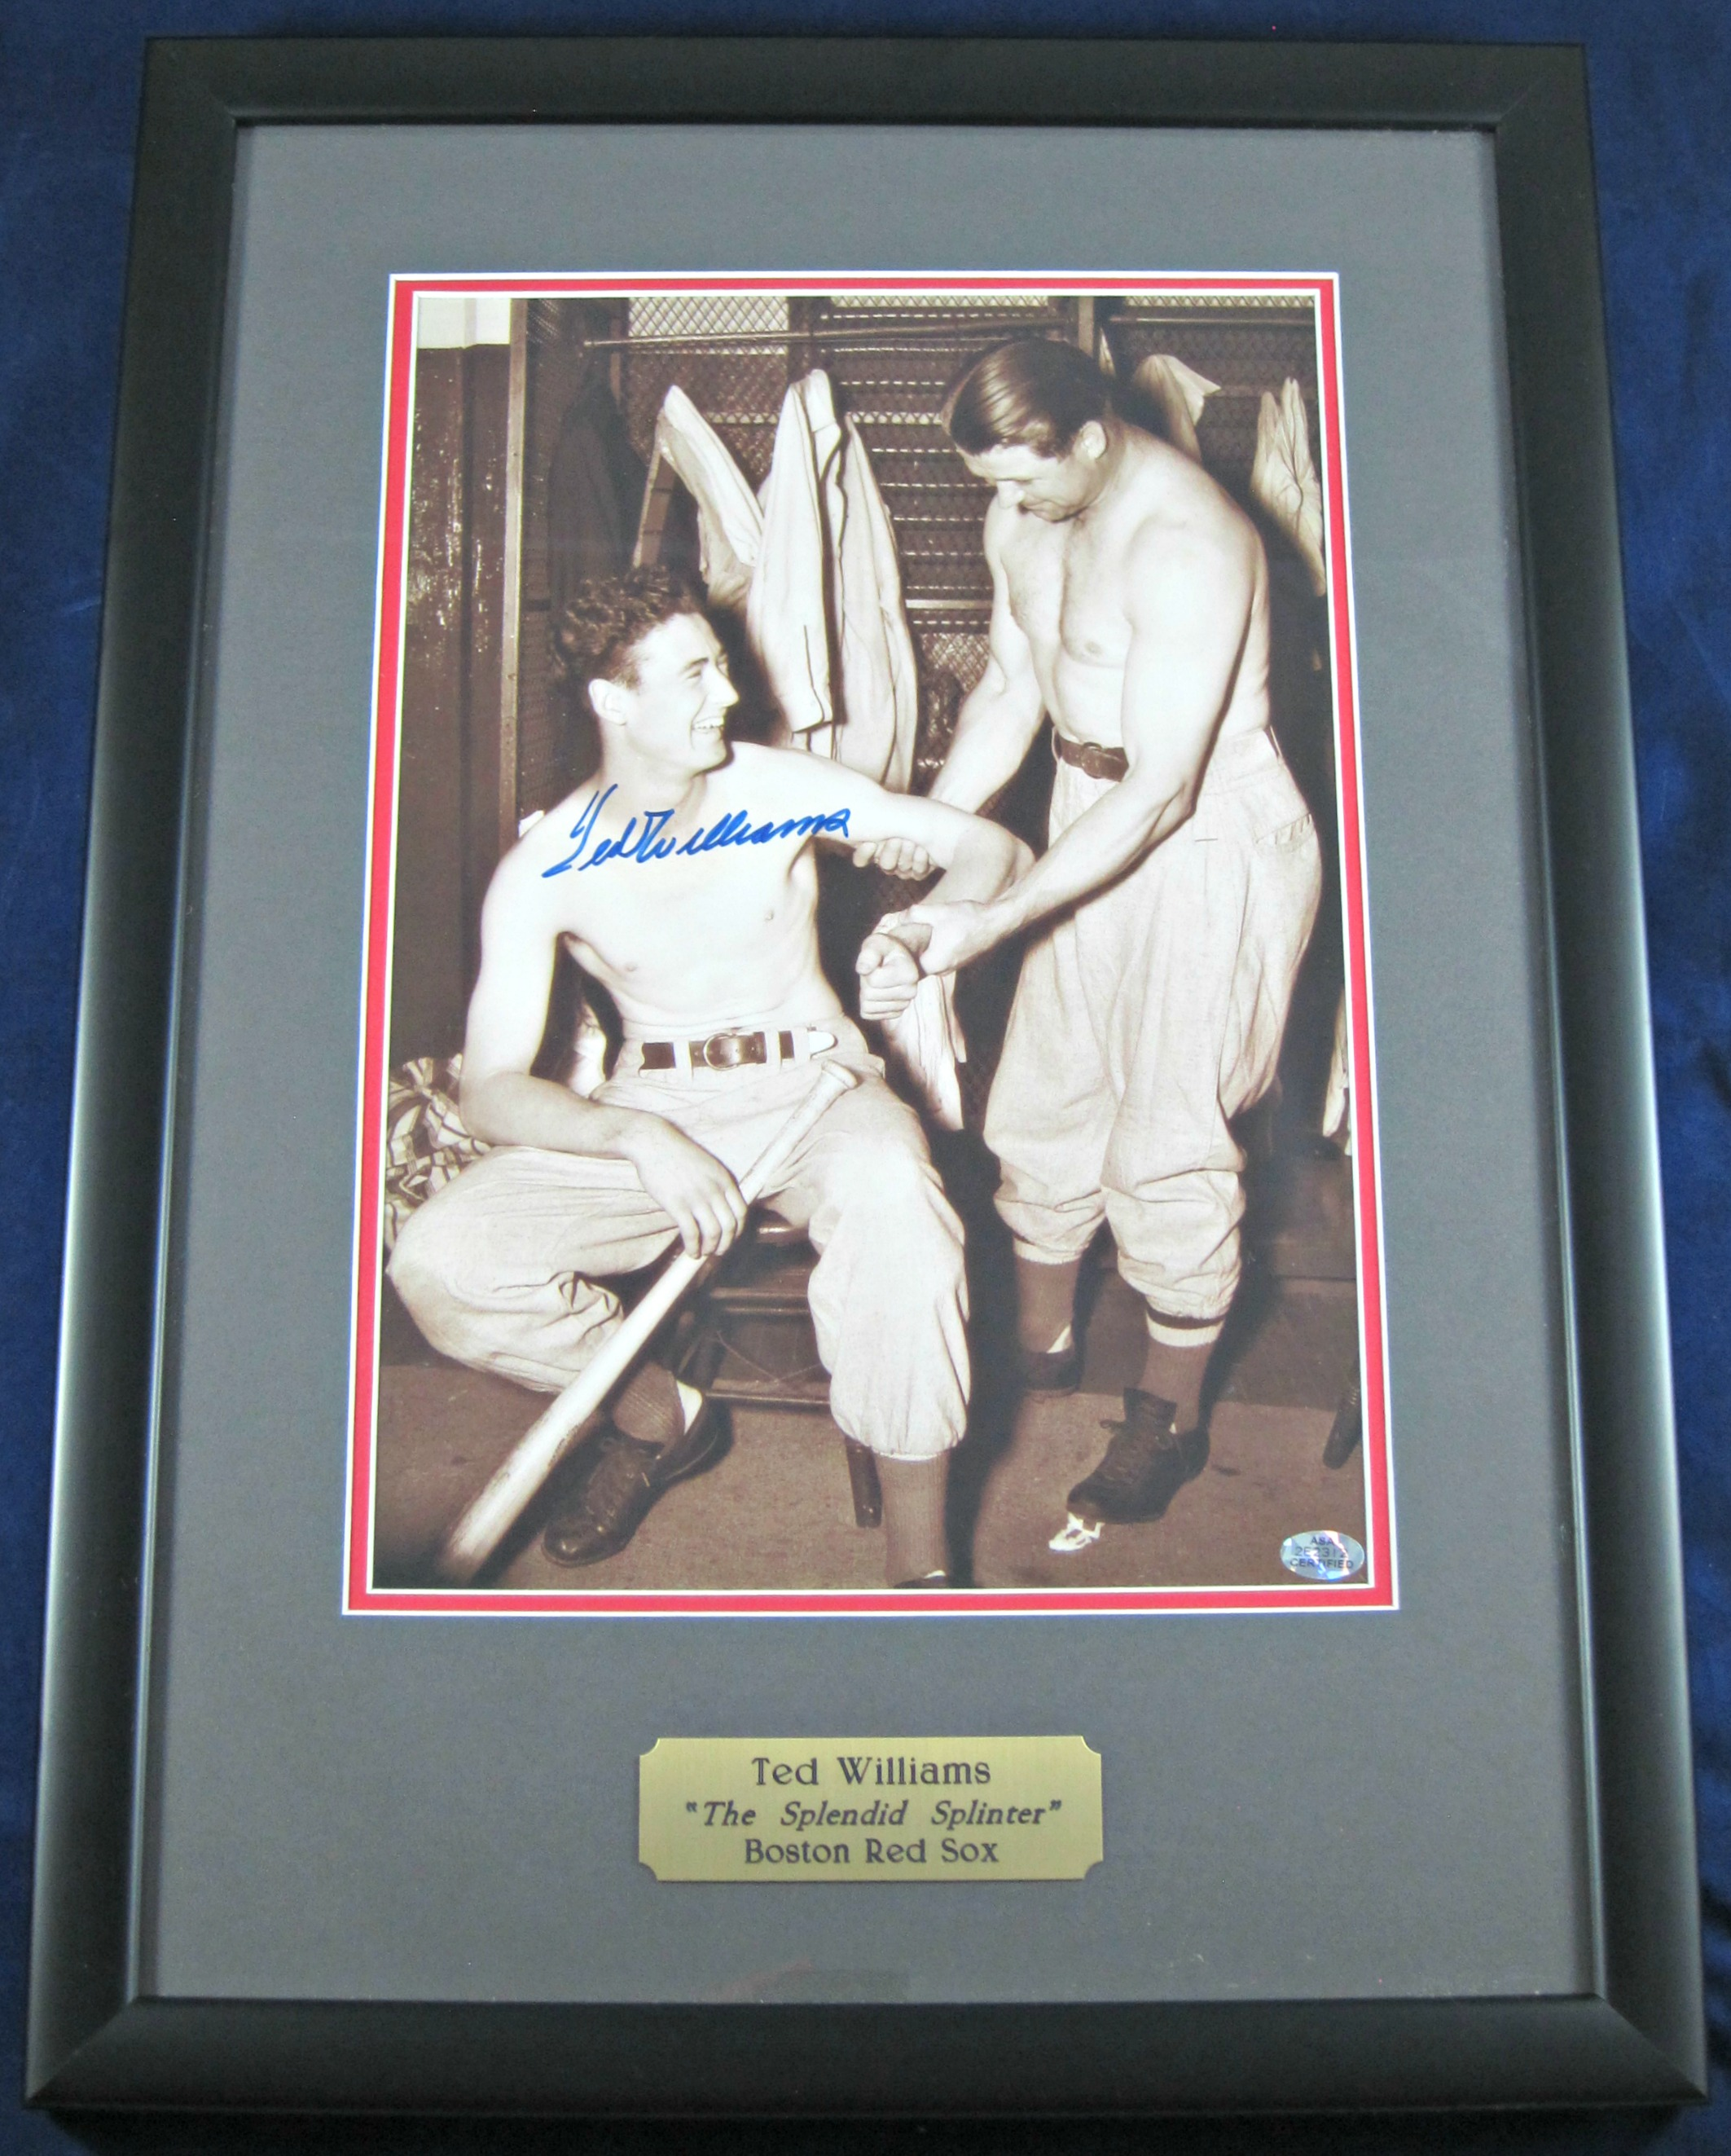 Ted Williams Autographed Display